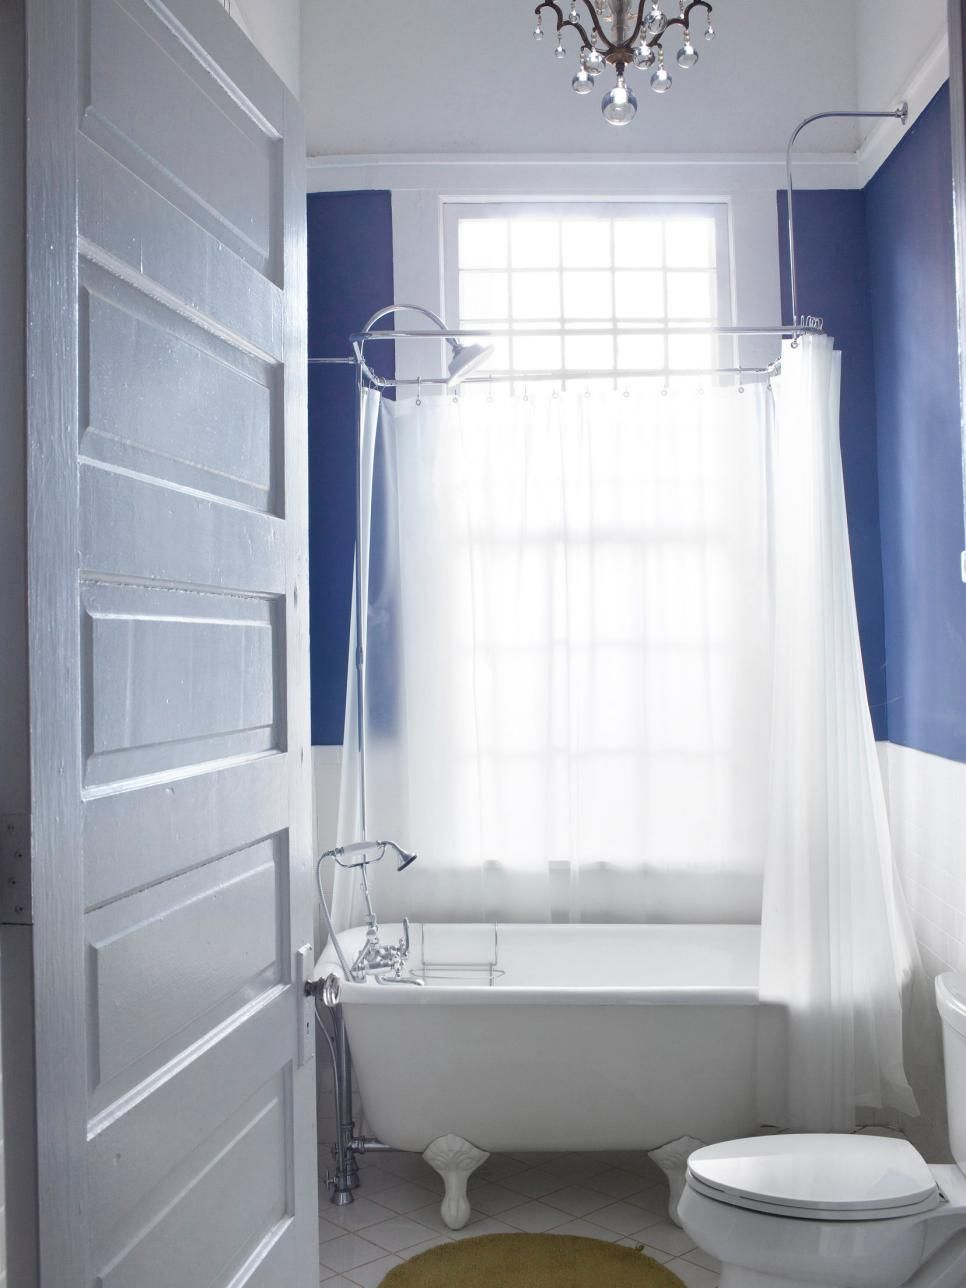 Bathroom pictures stylish design ideas youull love blue walls